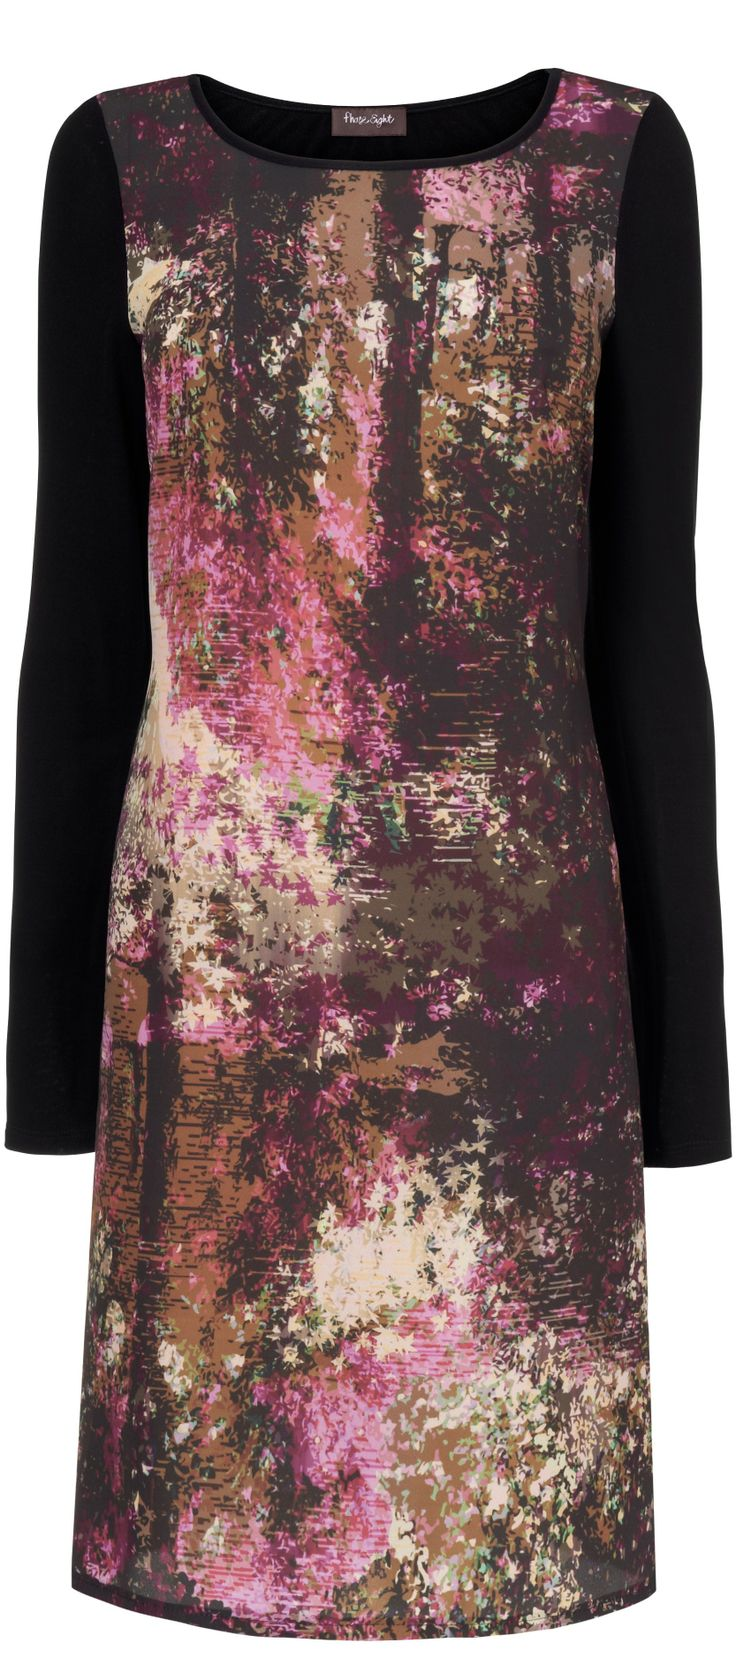 Pantone Cognac brown print dress for fall 2014 - article -   http://www.boomerinas.com/2014/05/25/pantone-fall-winter-2014-15-clothing-colors-not-my-faves/